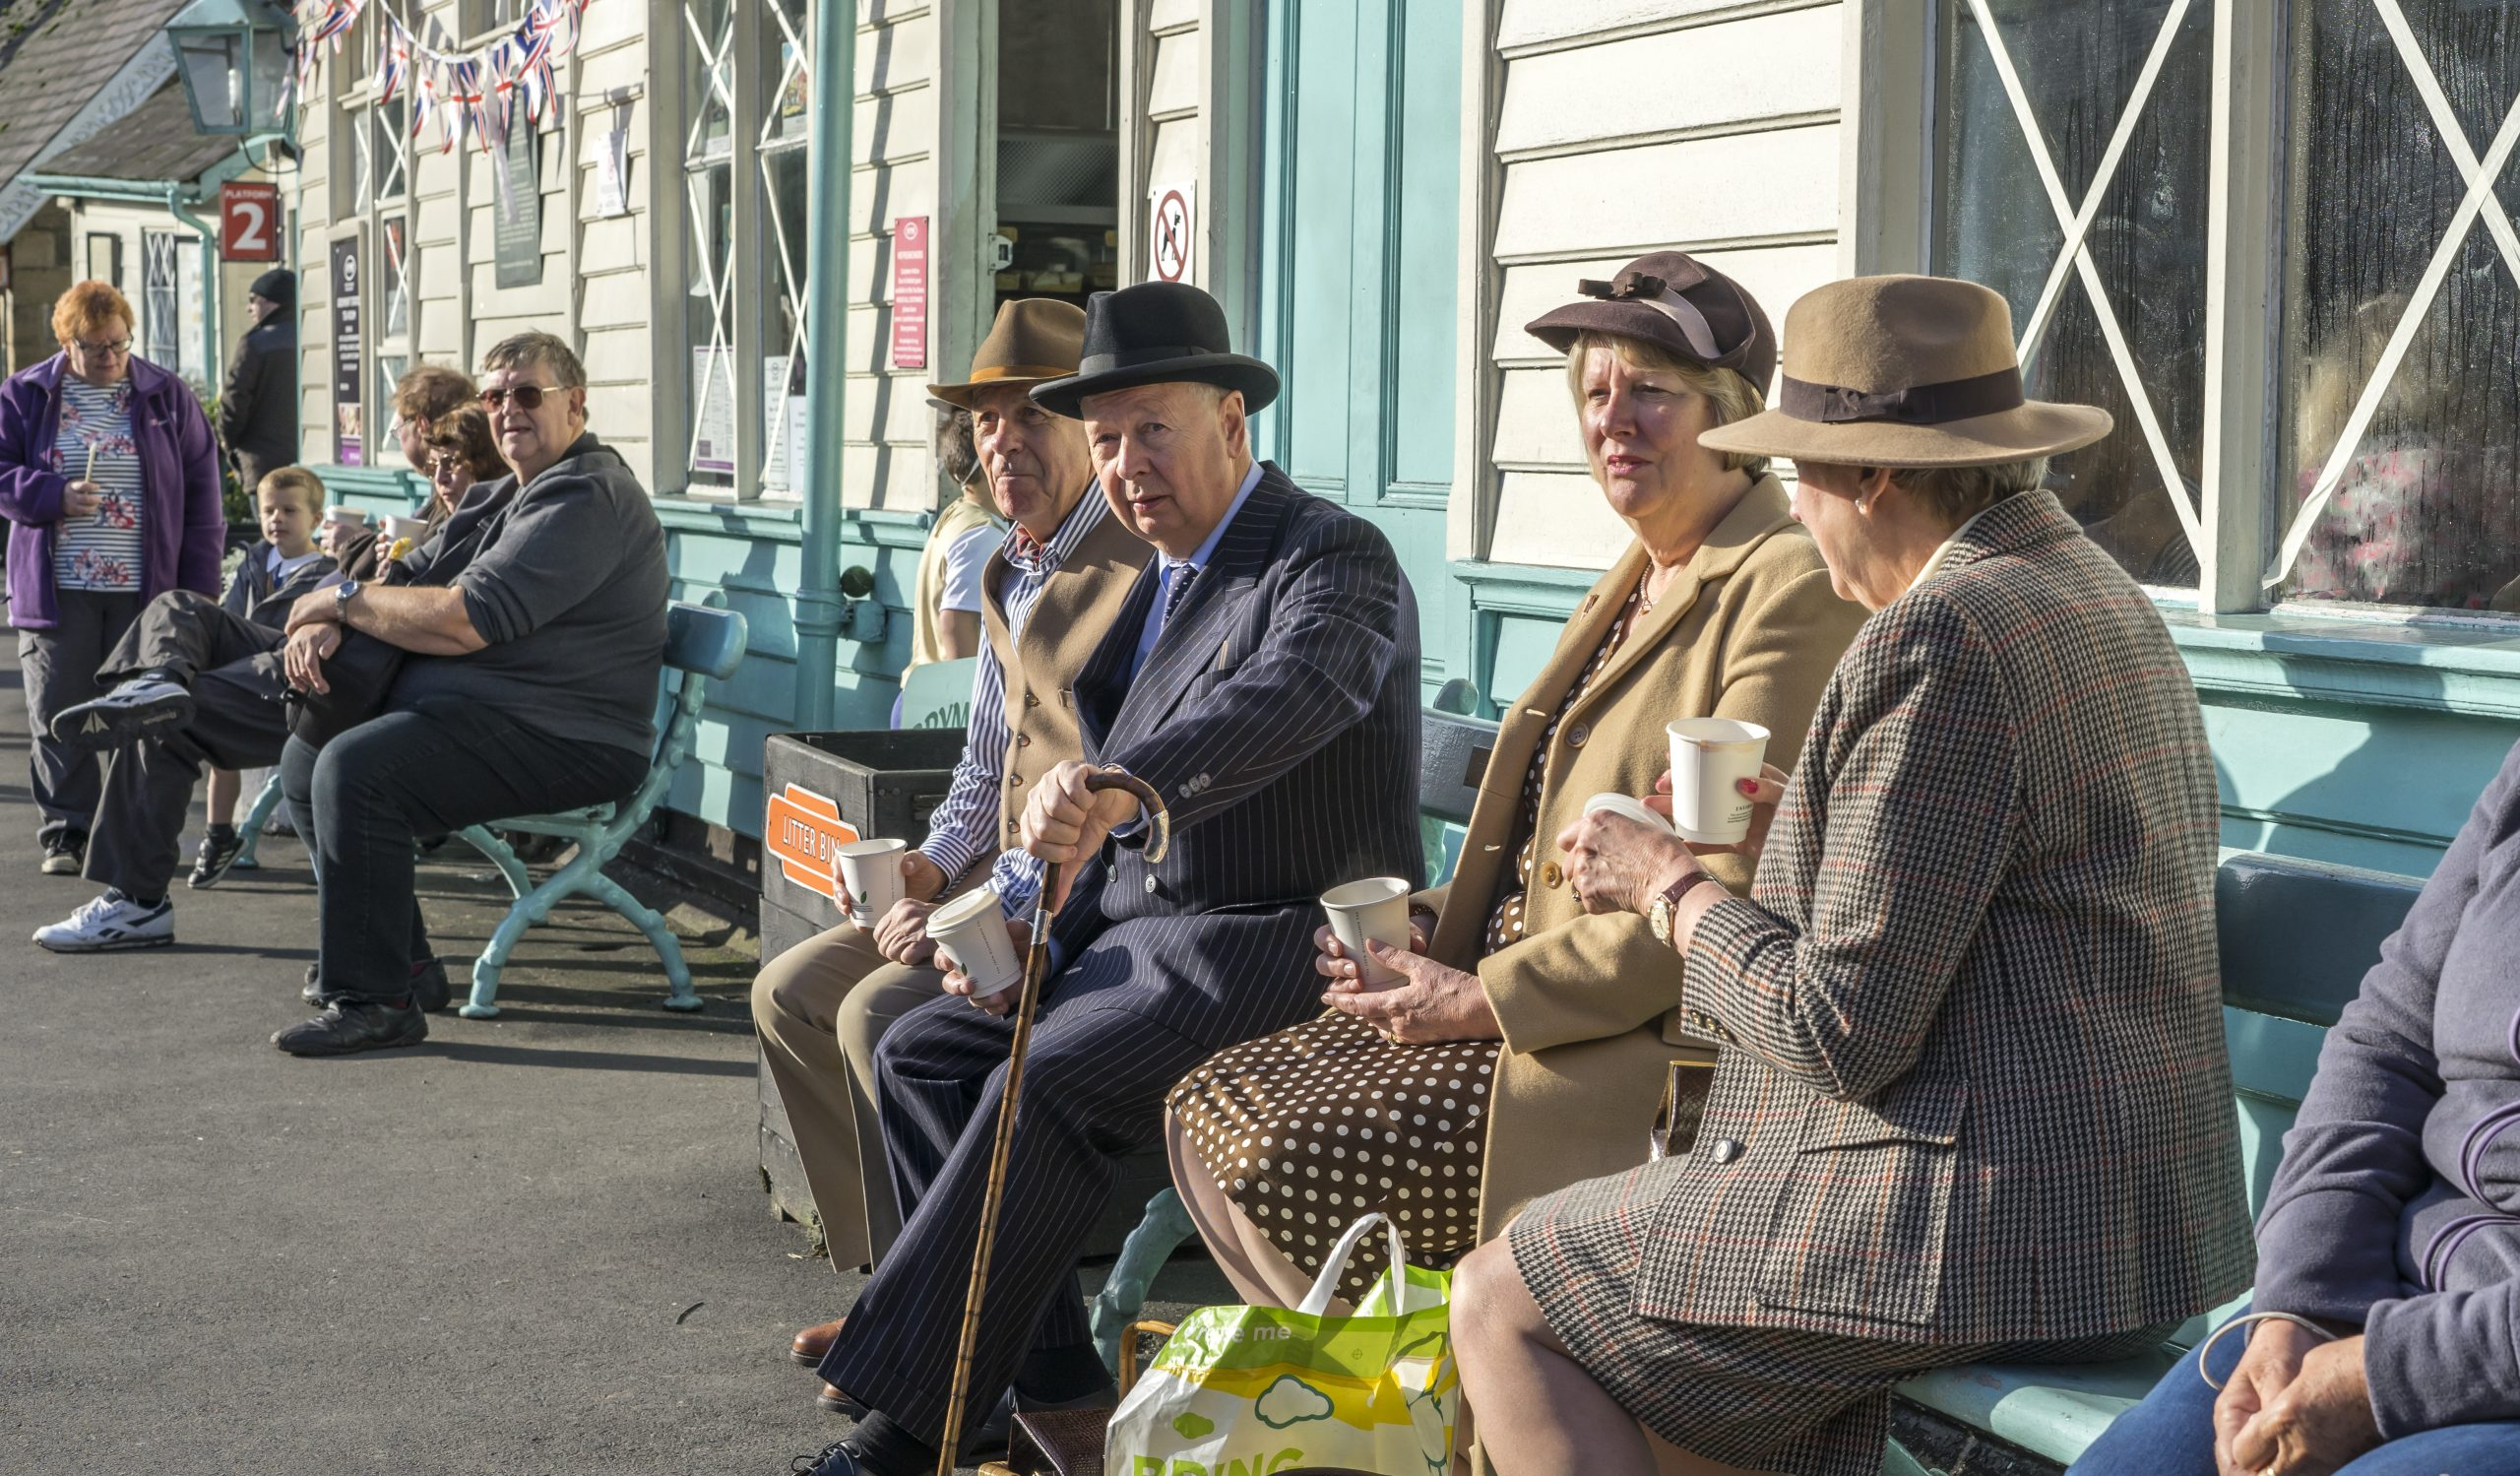 passengers dressed in 1940's style sat on a train station bench